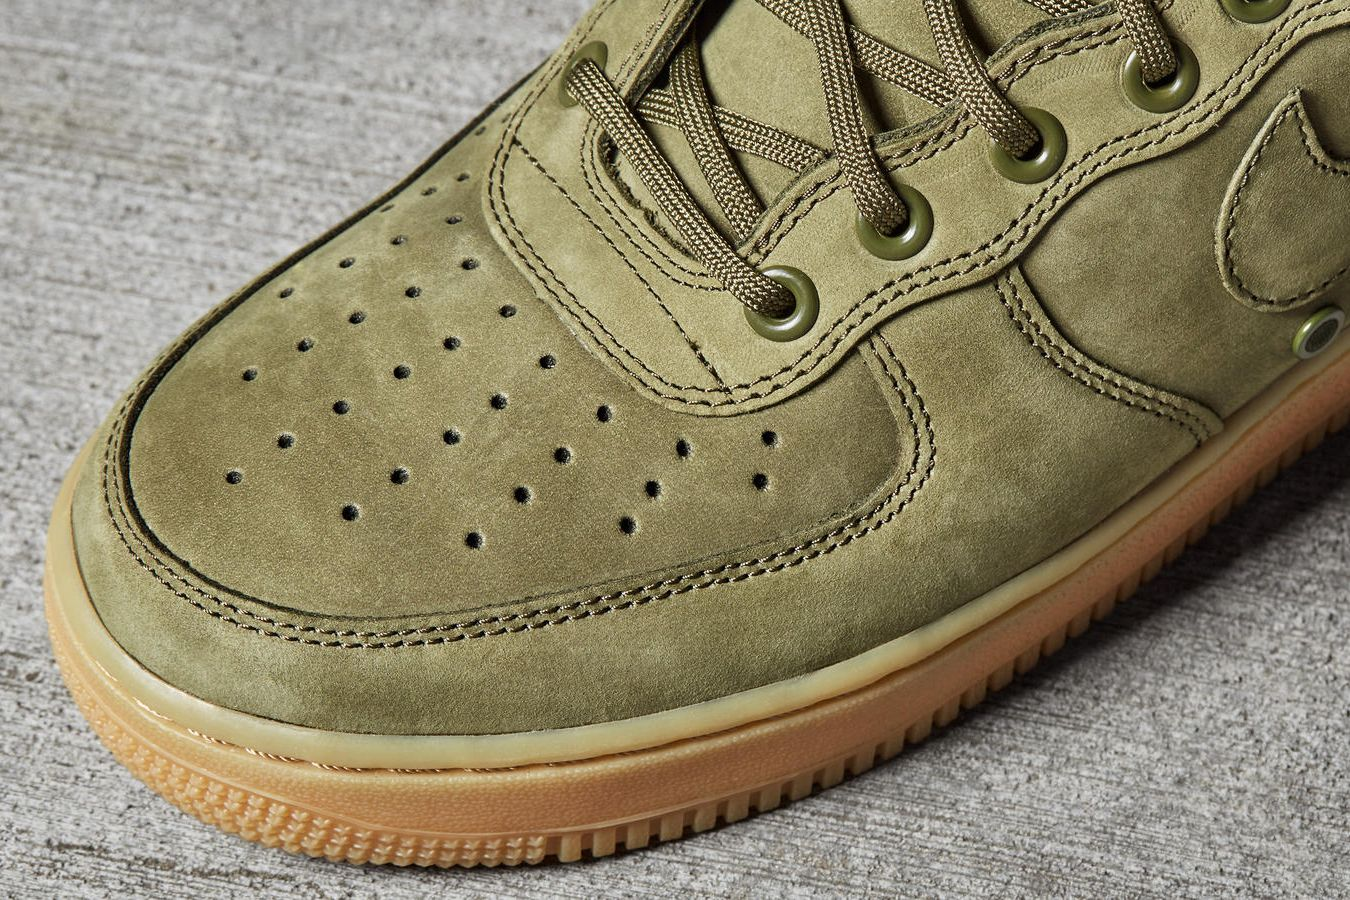 sale retailer ea827 cbacc The SF AF-1 is a winterized take on the iconic Air Force 1 silhouette.